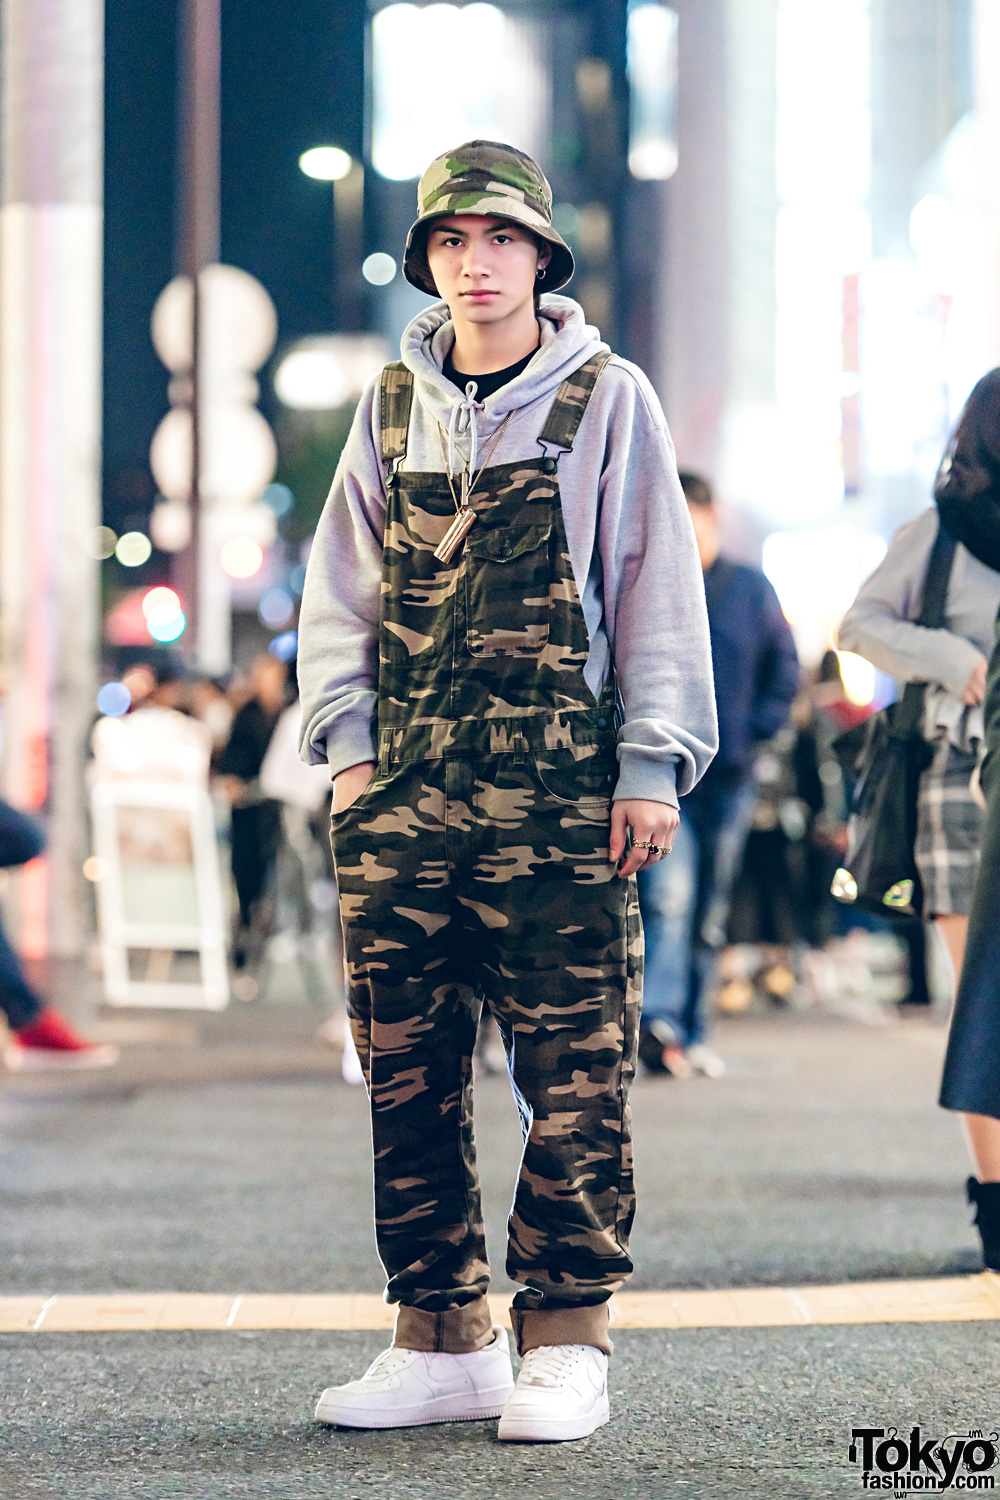 Camouflage Print Overalls & Grey Hoodie Japanese Street Style